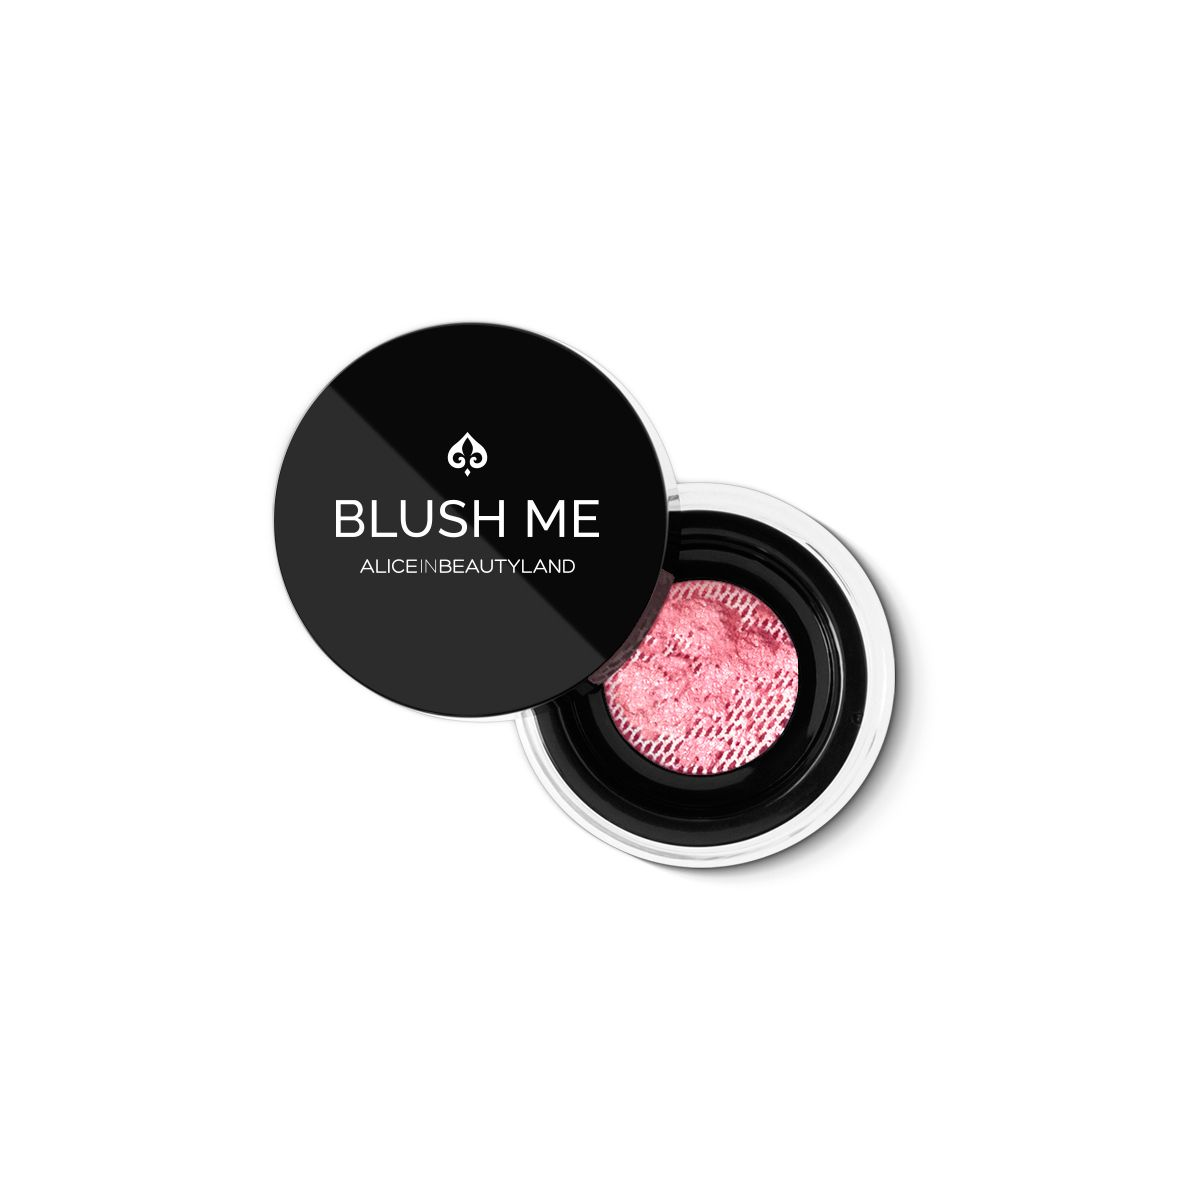 Blush Me de Alice in Beautyland color dreamy